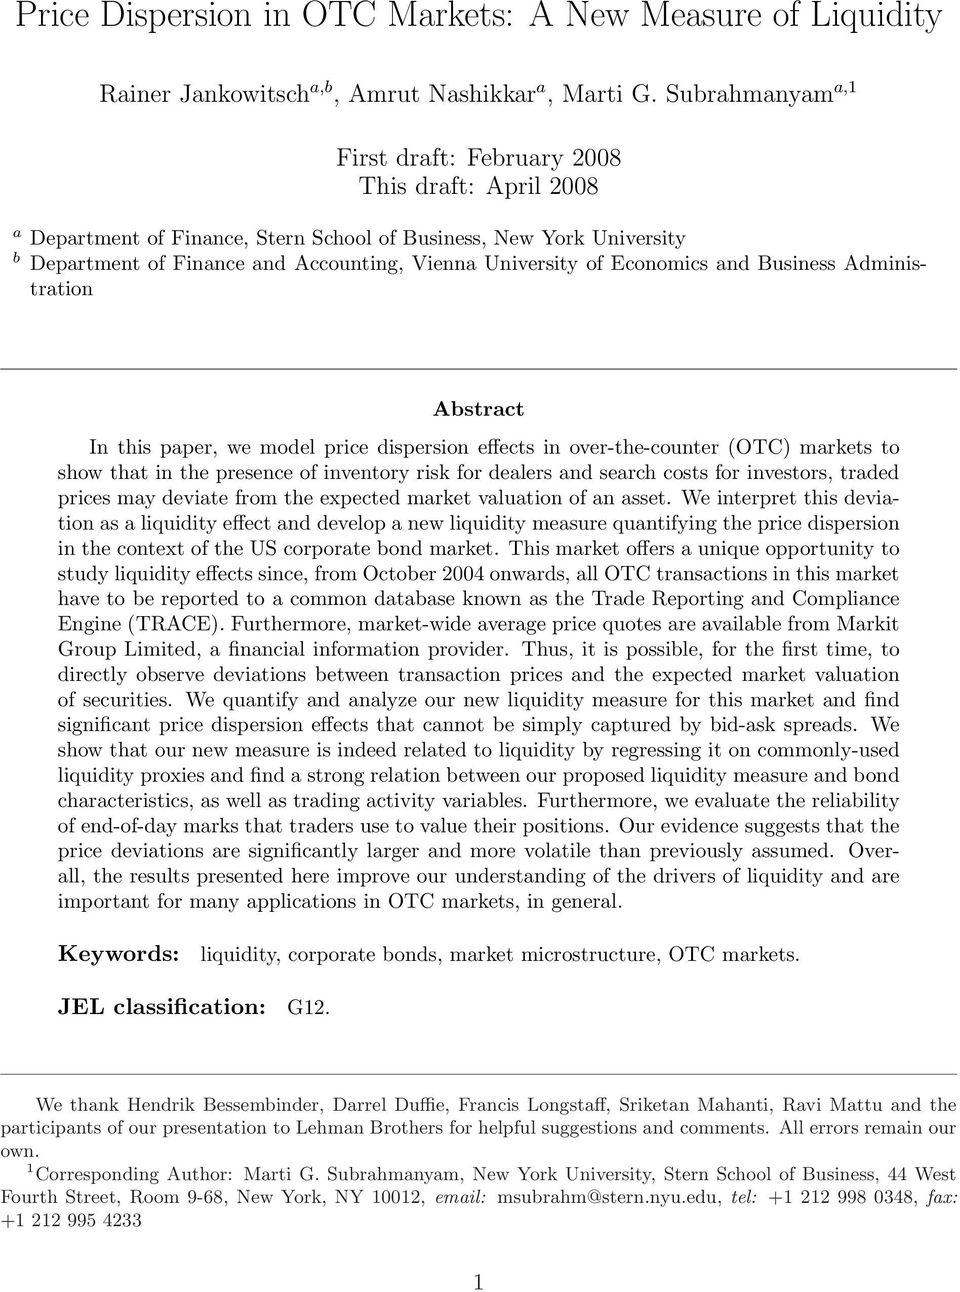 Economics and Business Administration Abstract In this paper, we model price dispersion effects in over-the-counter (OTC) markets to show that in the presence of inventory risk for dealers and search